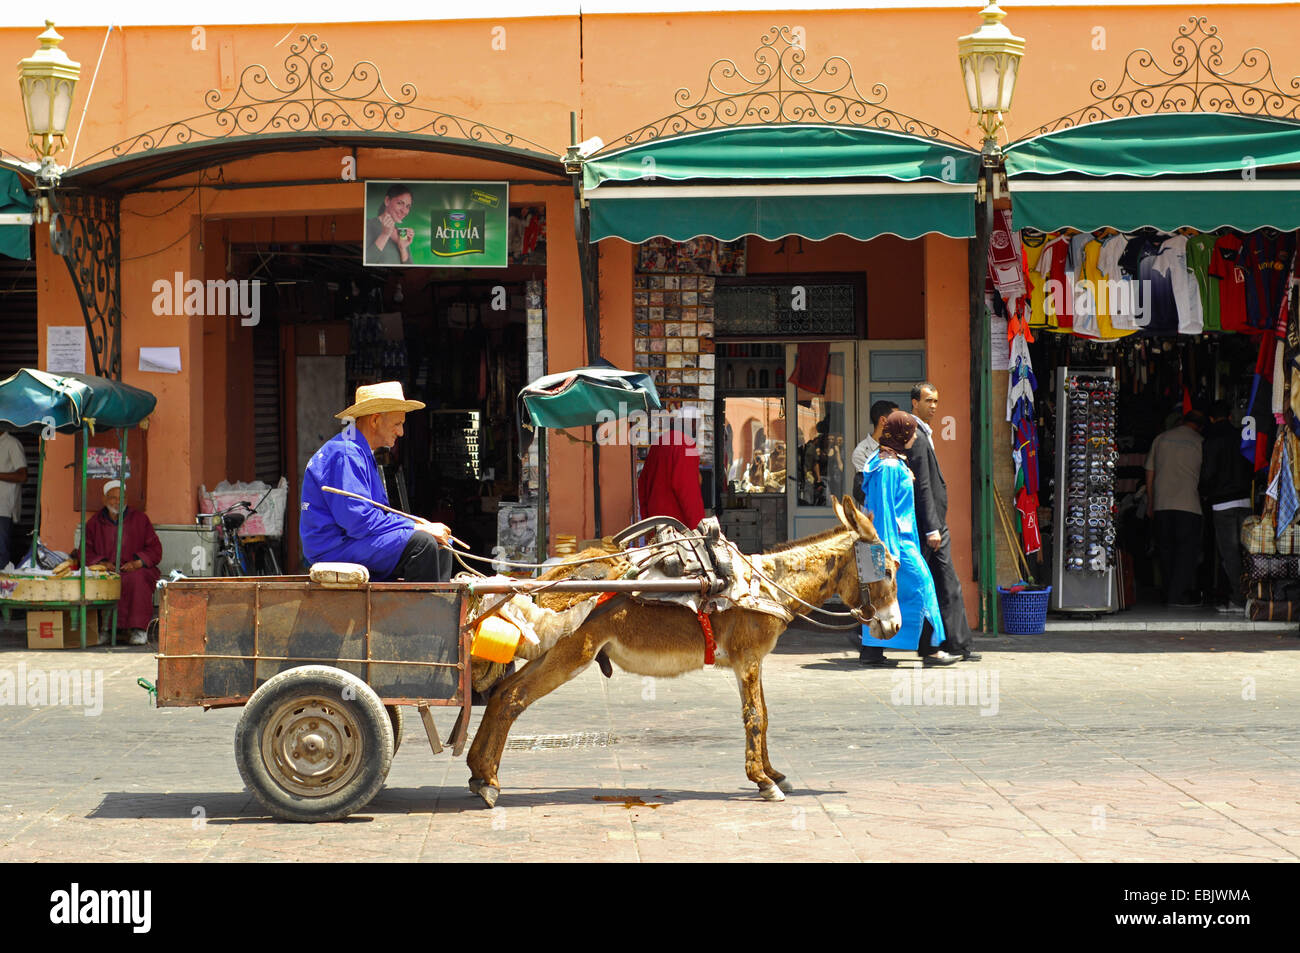 domestic donkey (Equus asinus f. asinus), man sitting in donkey cart Jemaa el-Fnaa market place, Morocco, Marrakesh - Stock Image